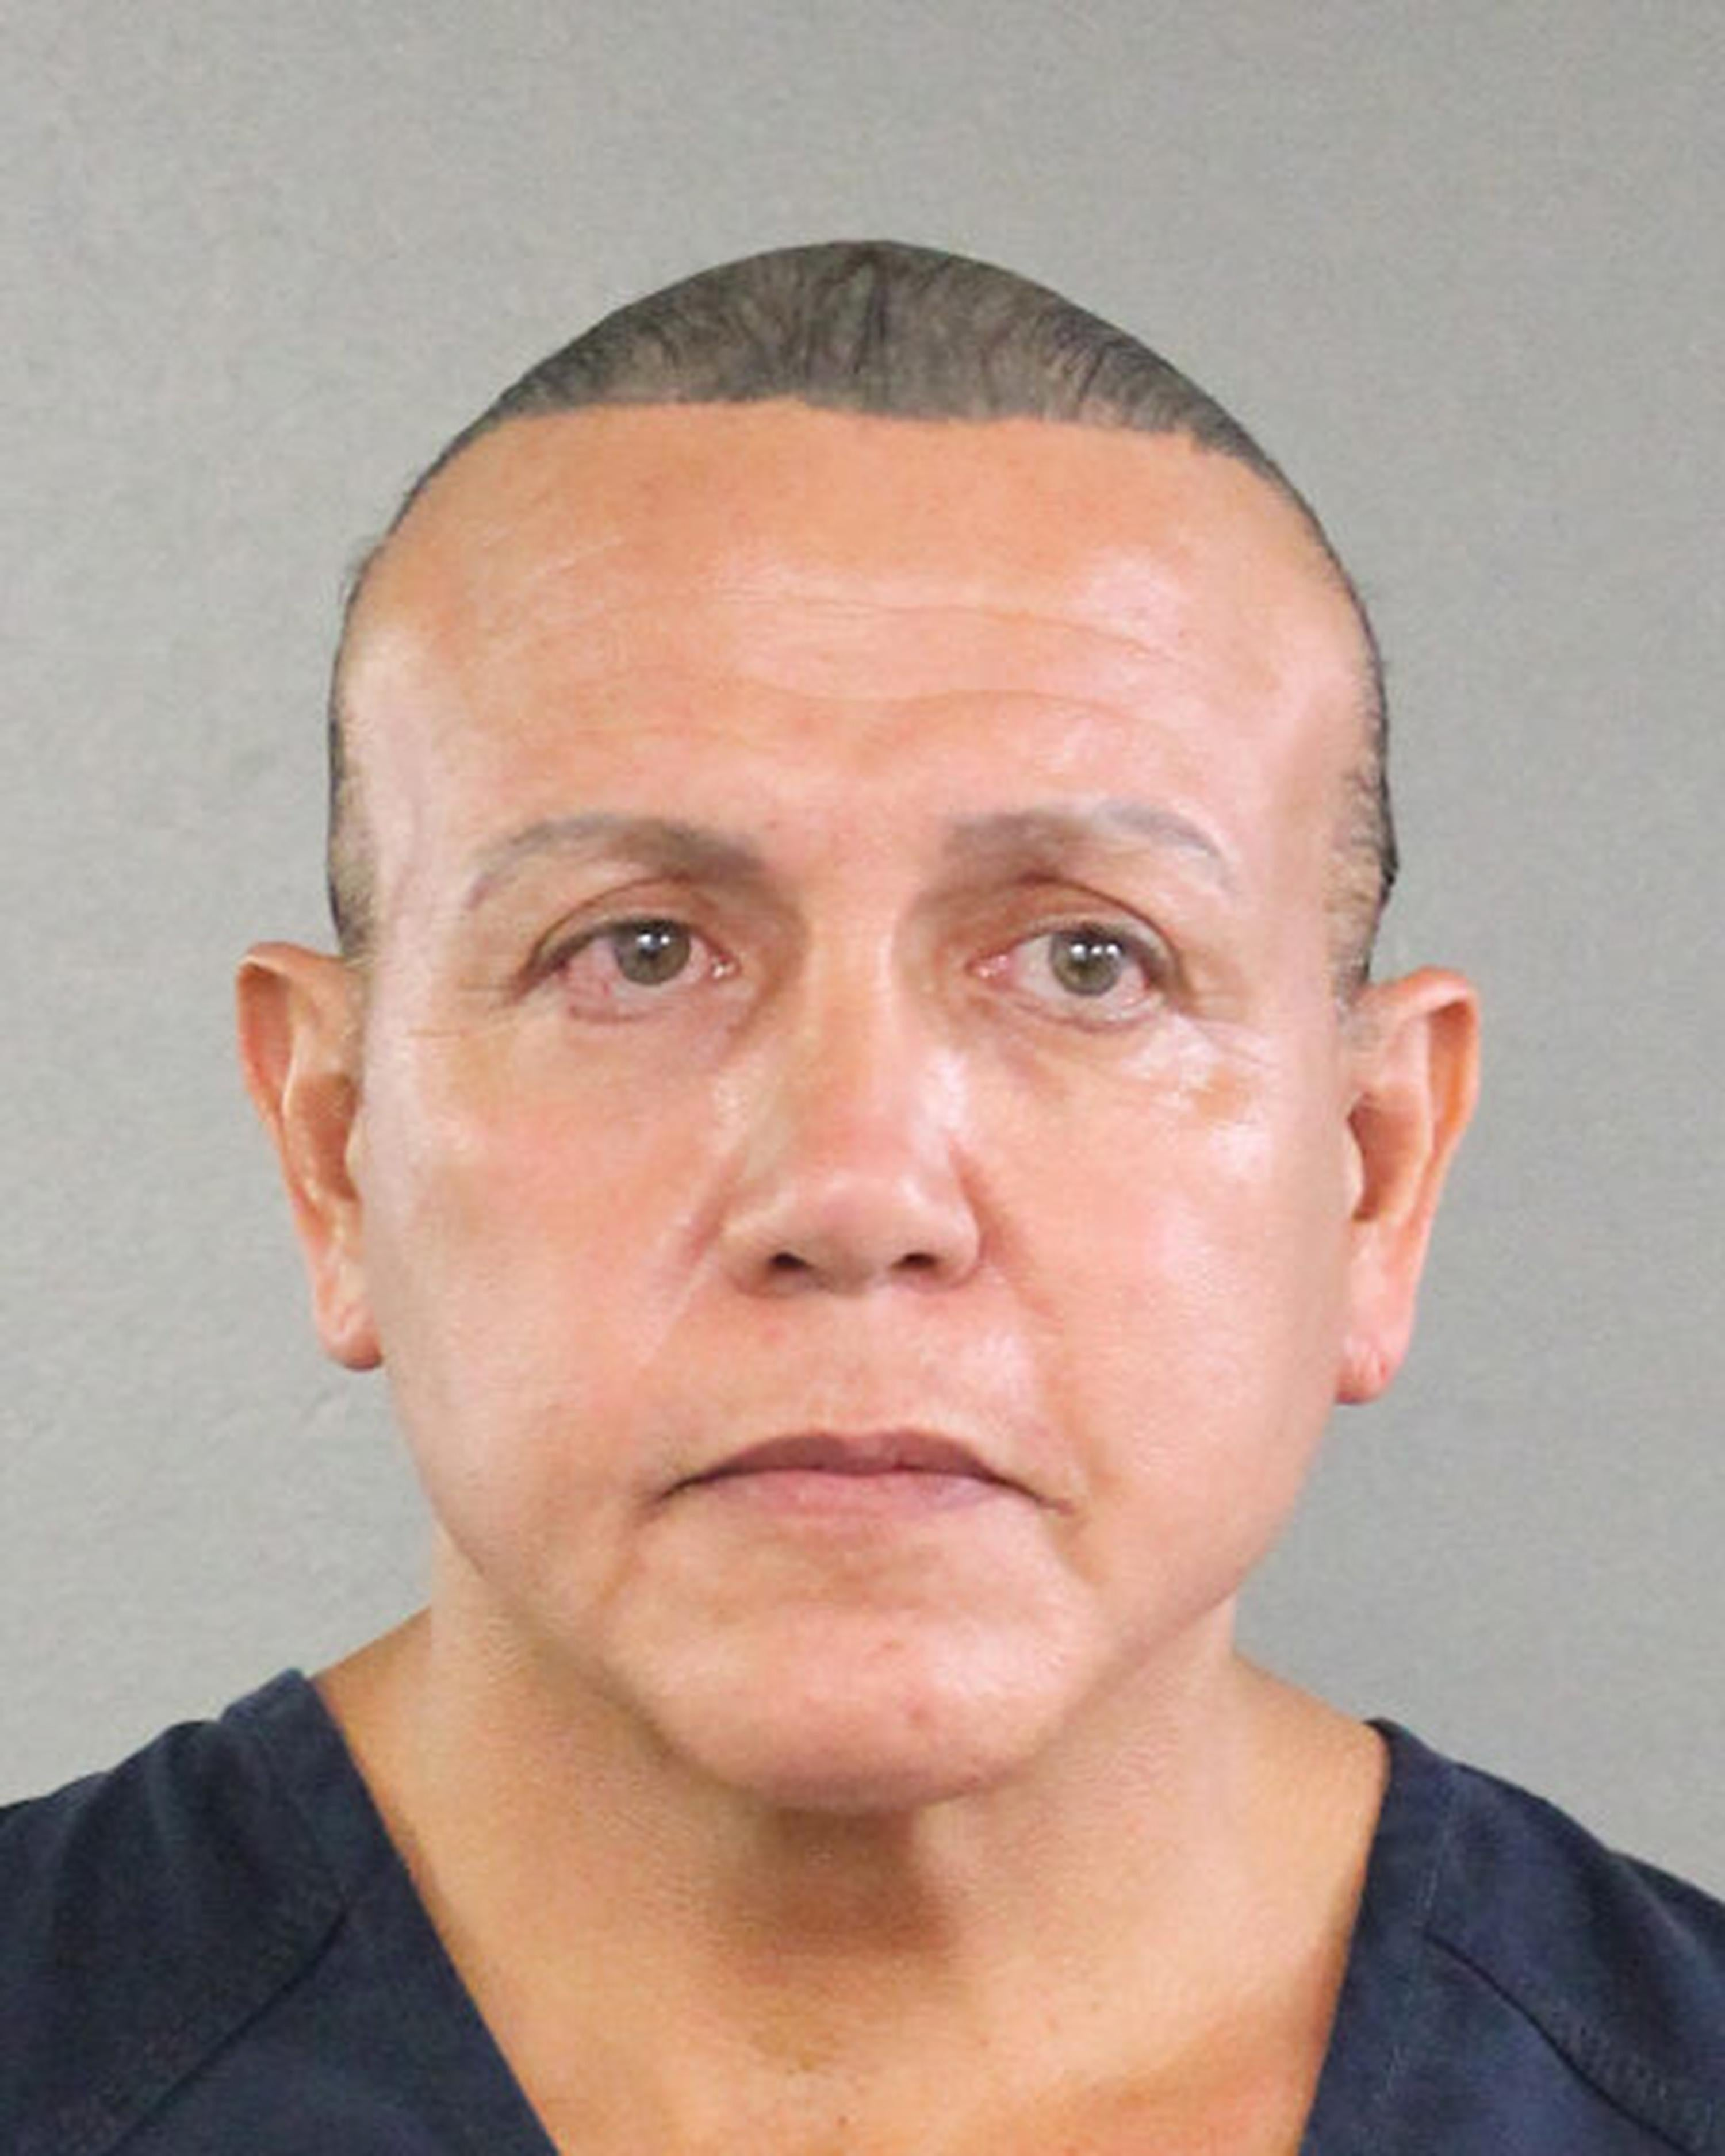 An undated mugshot of Cesar Sayoc, the pipe bombing suspect